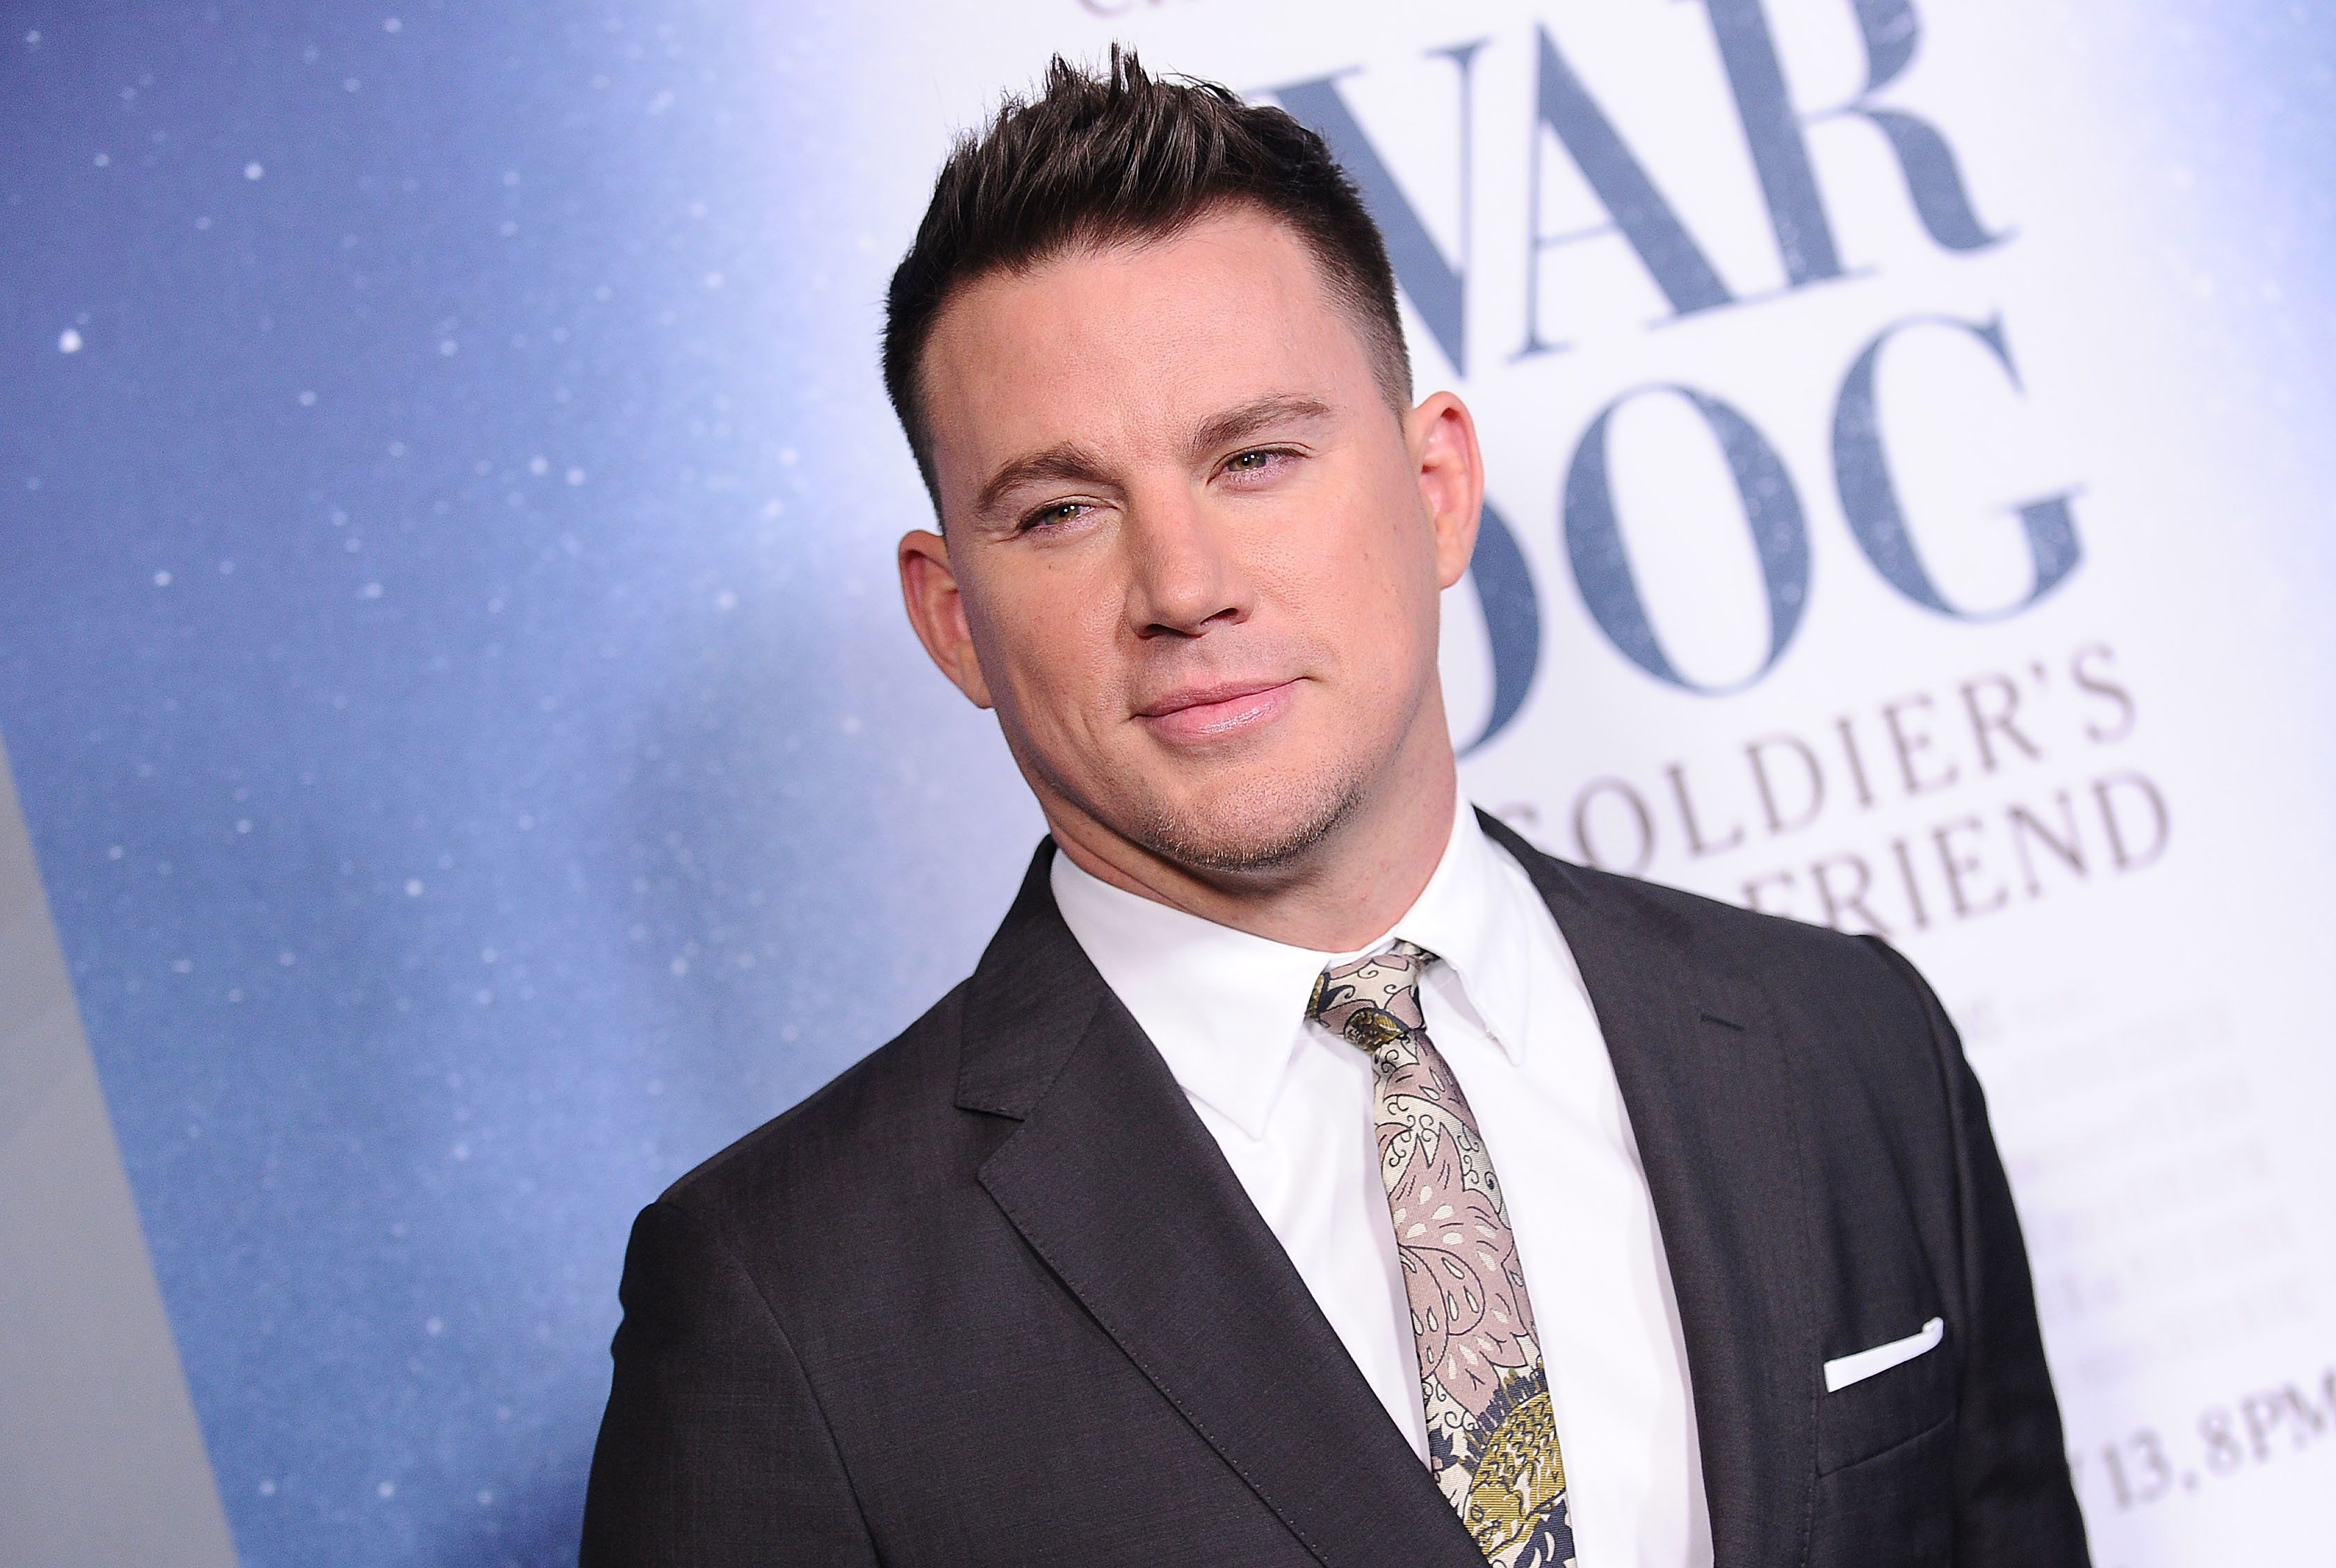 Channing Tatum Teases 'Gambit': 'Wait Till You See What We're Going To Do'